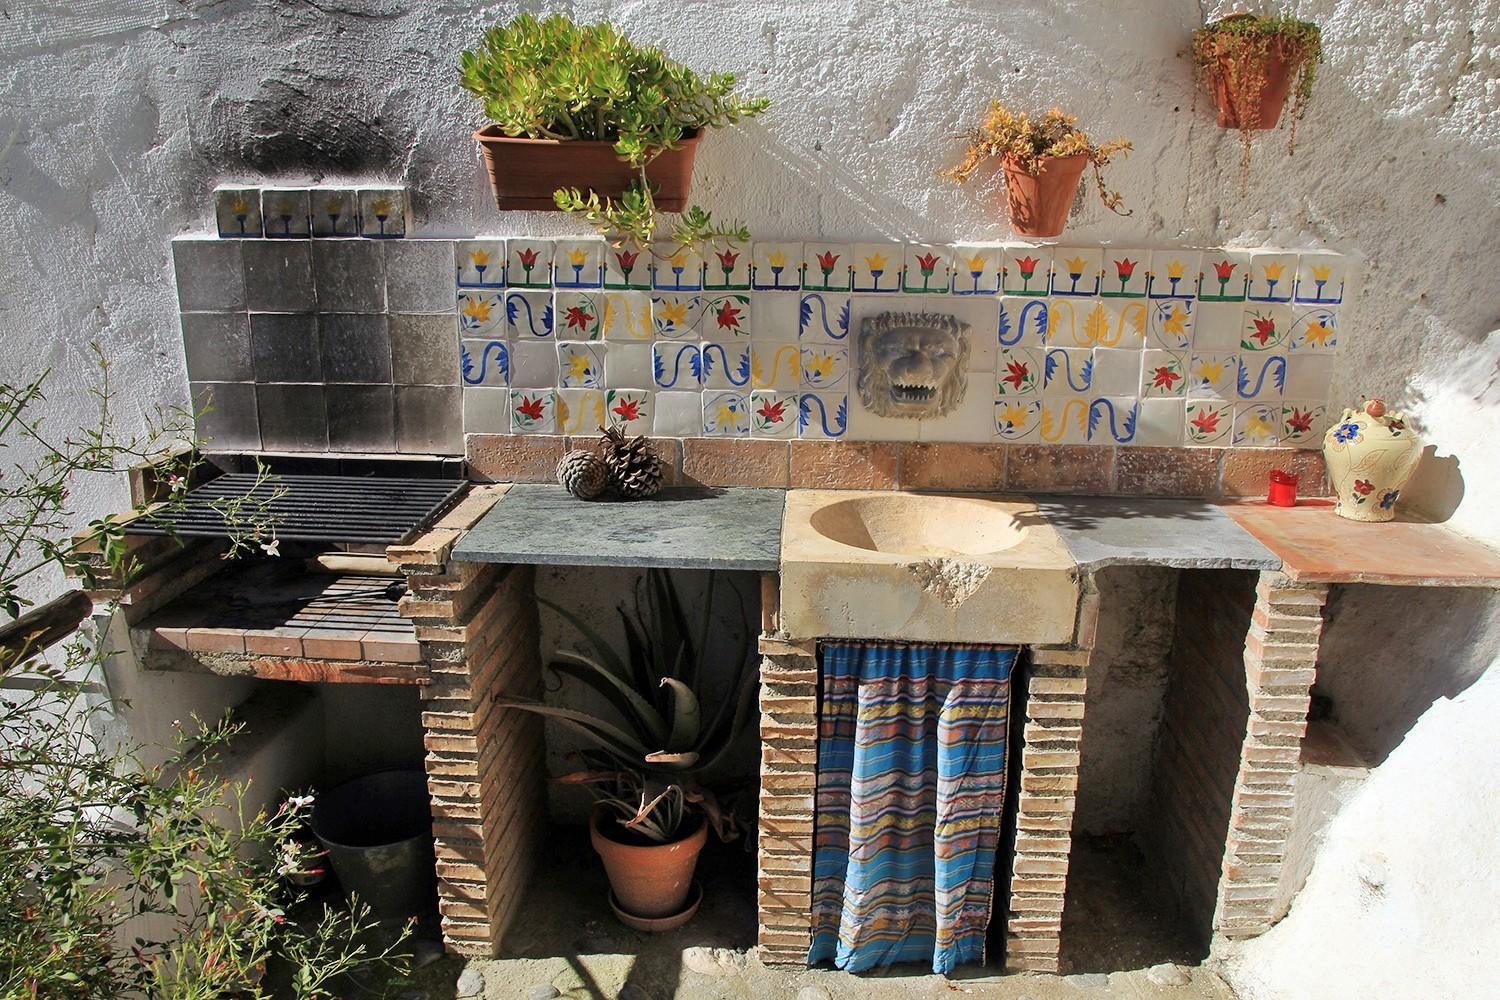 The open air kitchen